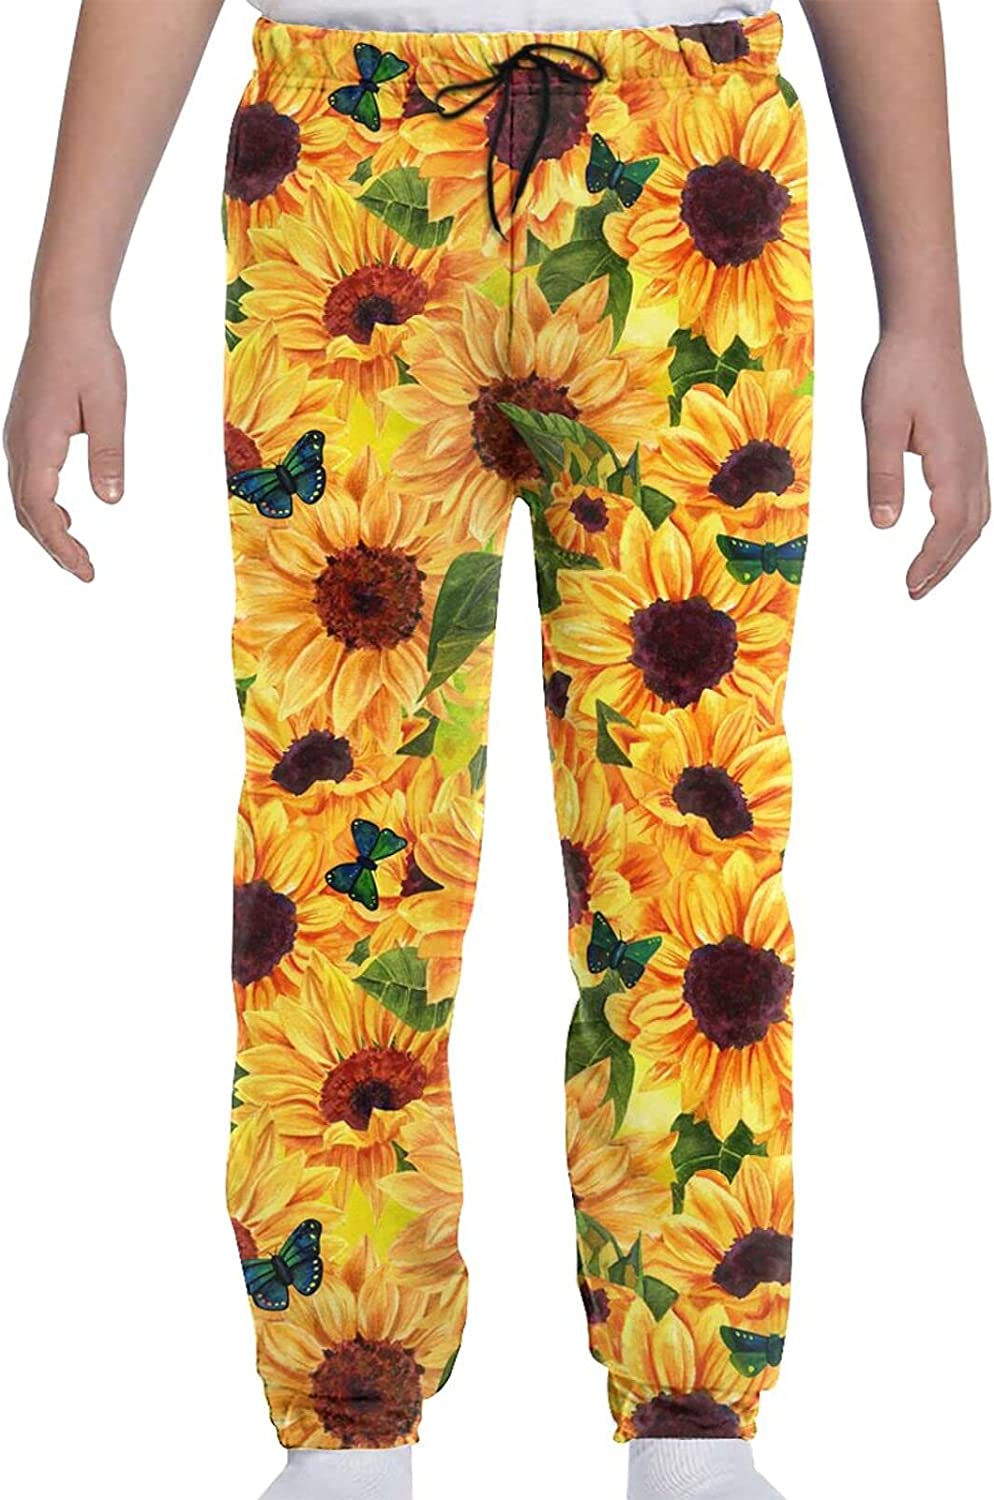 HSXOOW Vibrant Sunflowers and Butterflies Youth Sweatpants for Boy Girl Jogger Pants with Pockets